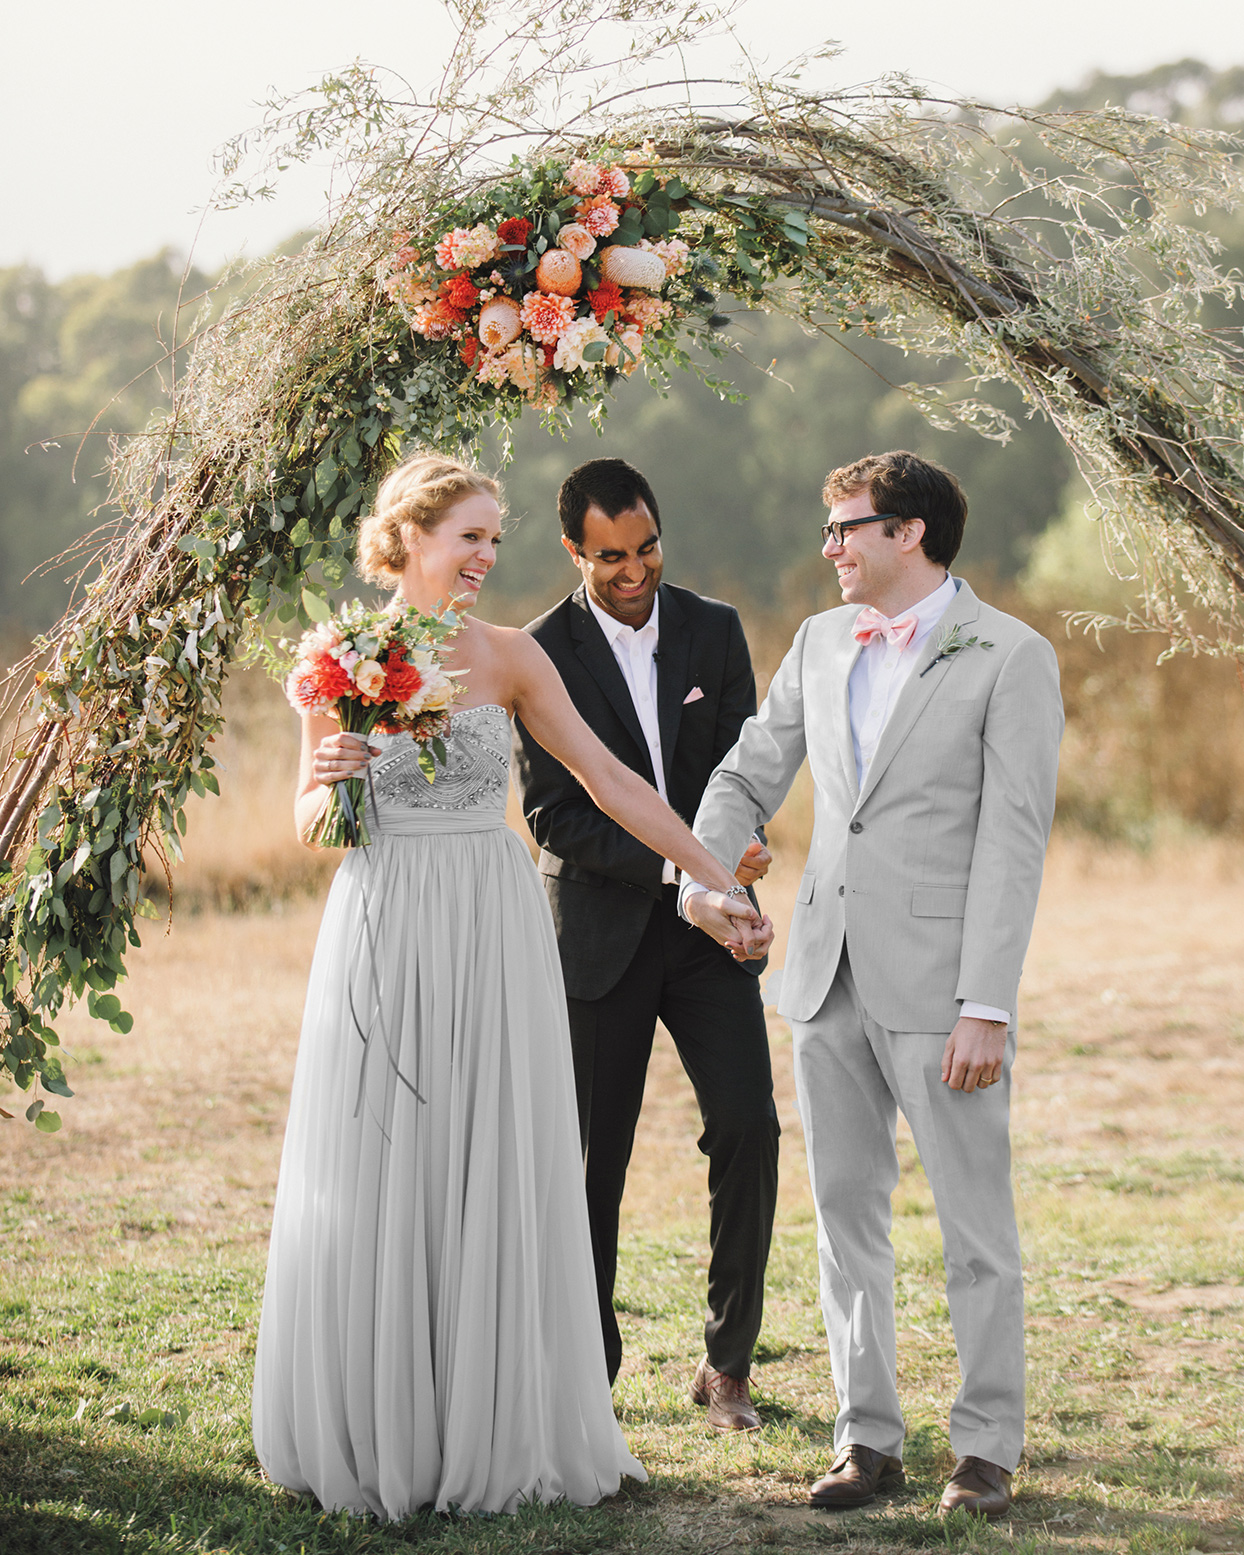 anna timothy wedding vows under twig branch arch